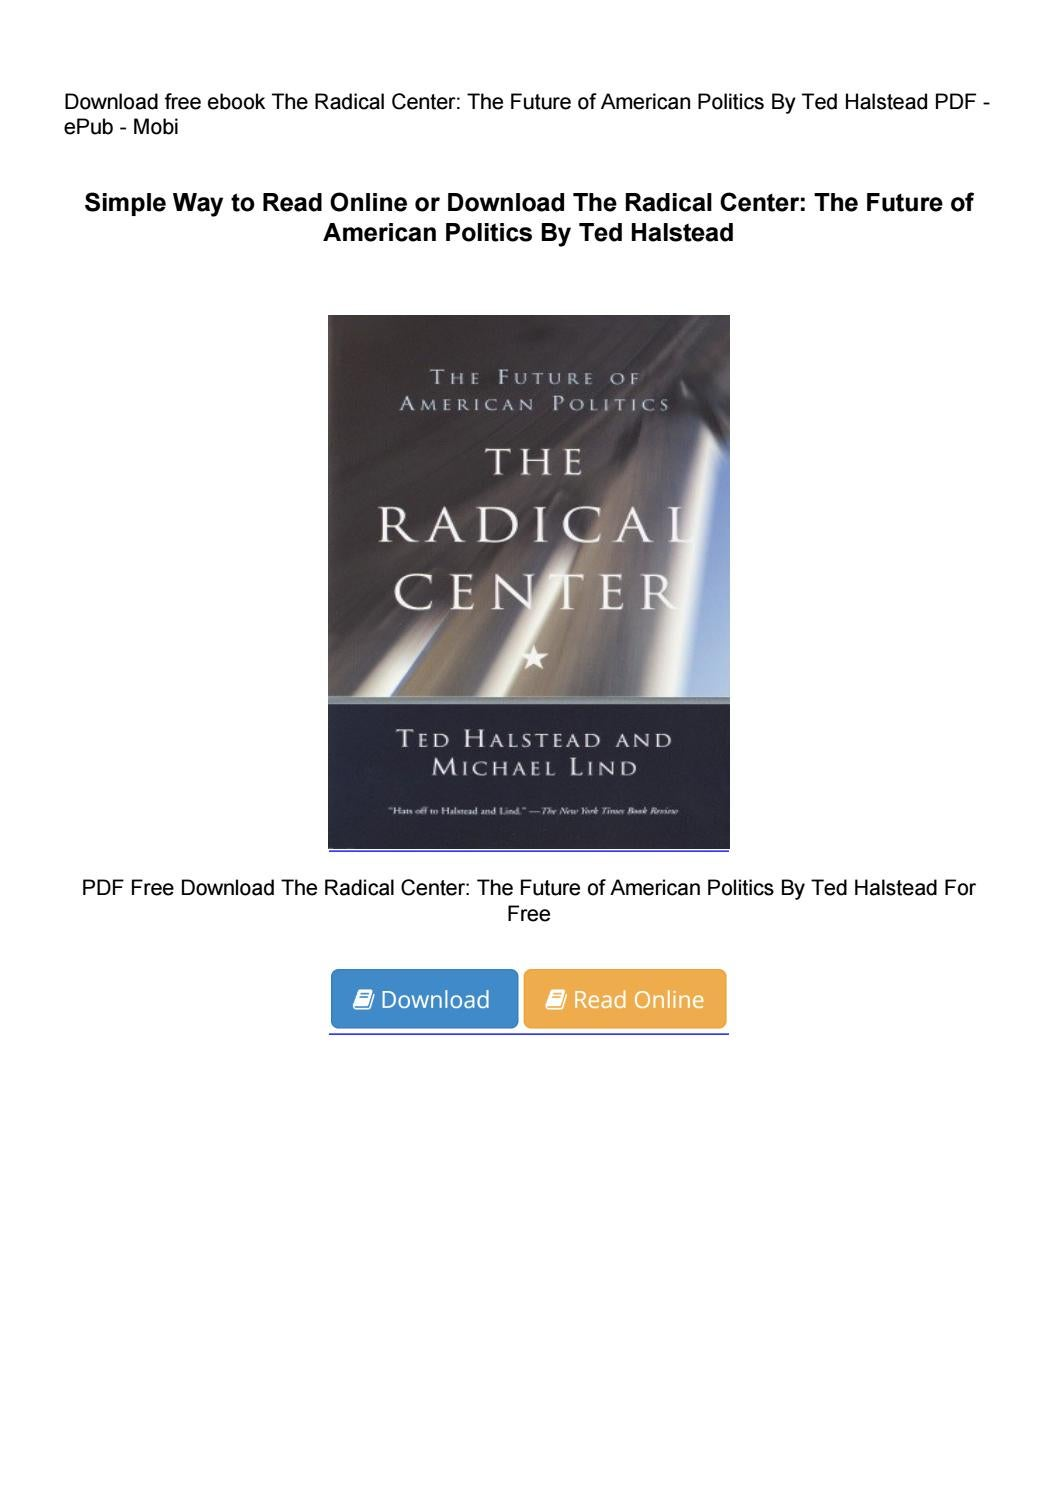 Pdf The Radical Center The Future Of American Politics By Ted Halstead By Ebooktranding4 Issuu